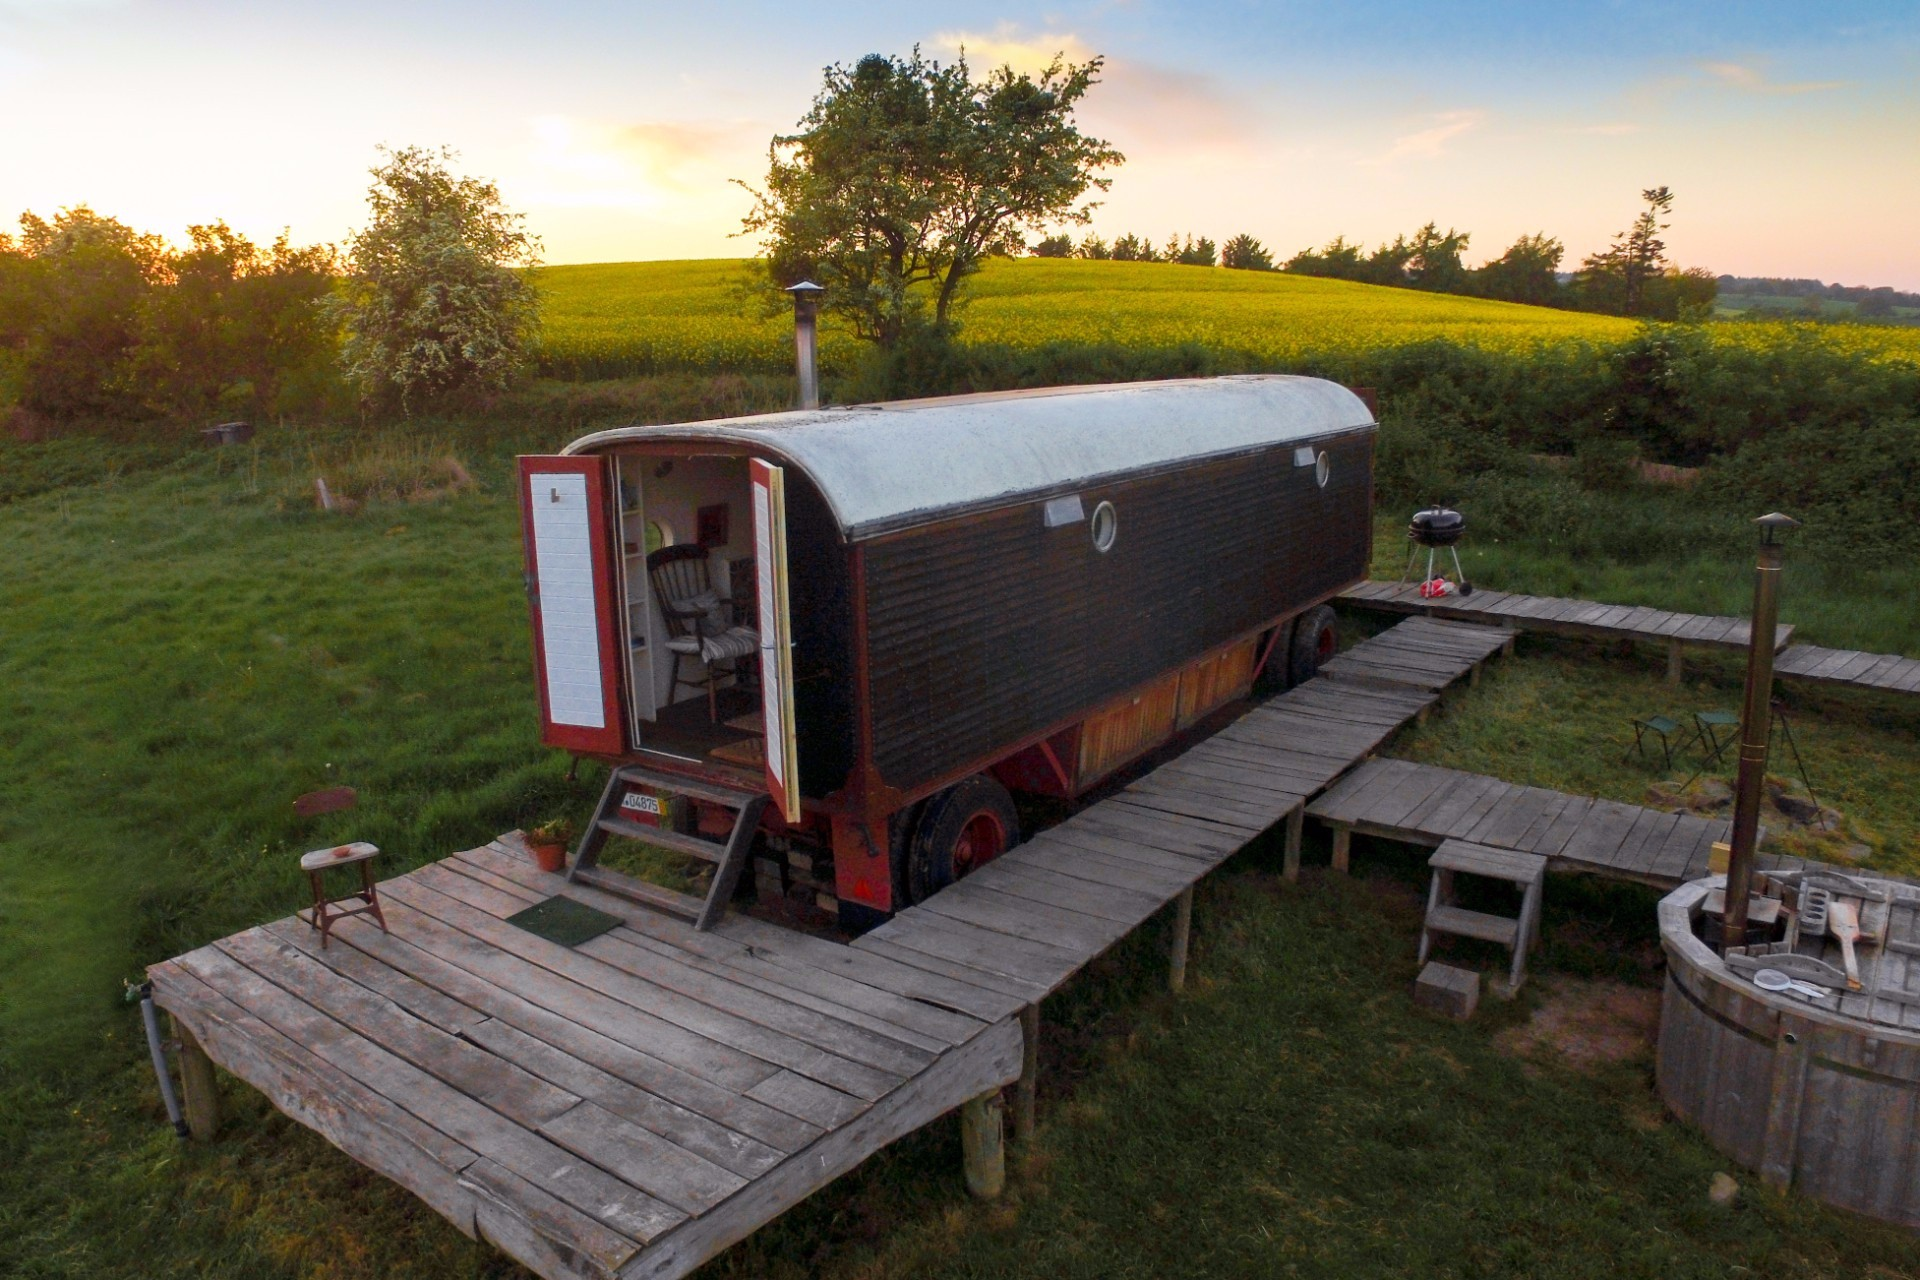 Herefordshire Hideaways: Winding Down in the Stargazor's Wagon. Find out more about my recent staycation and glamping trip to Herefordshire, England, UK. We stayed in a quirky and rustic converted wagon which came with an outdoor wood-fired hot tub! Click through to read more...